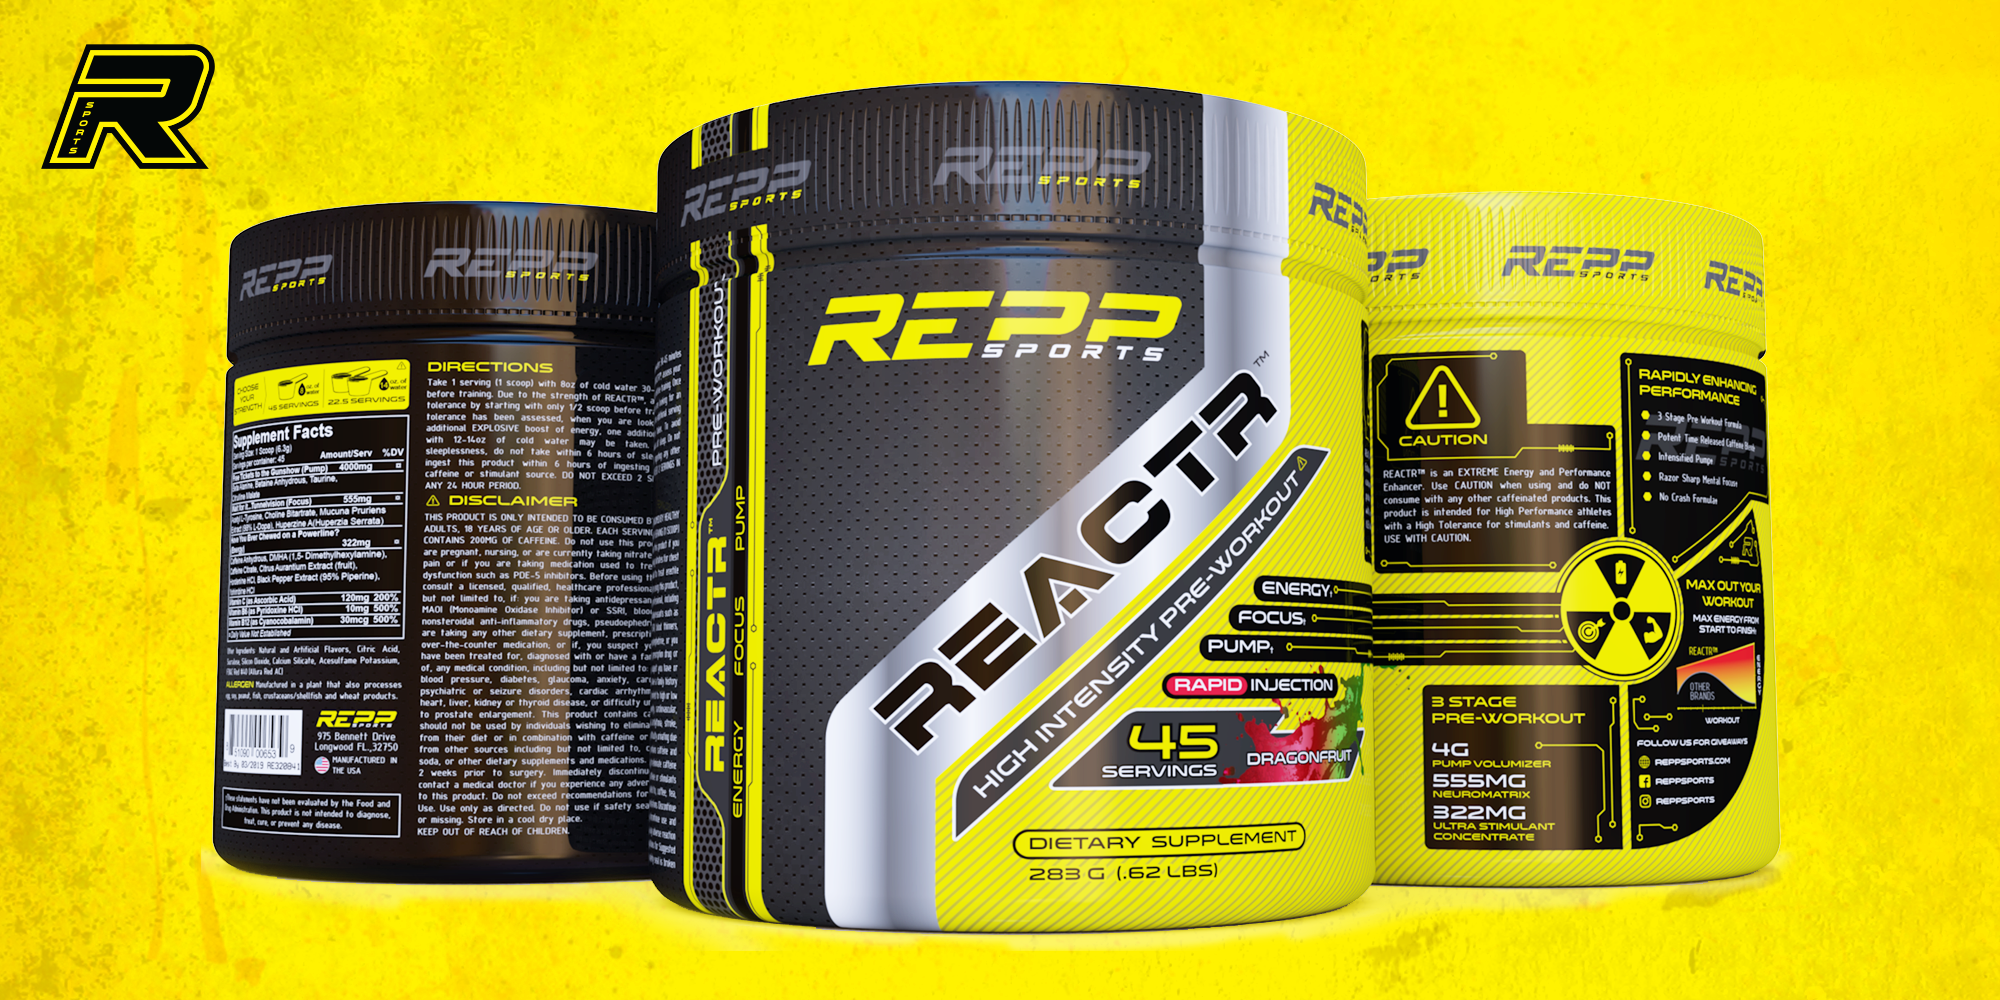 REPP Reactr Review: Pre-workout perfect for stim addicts